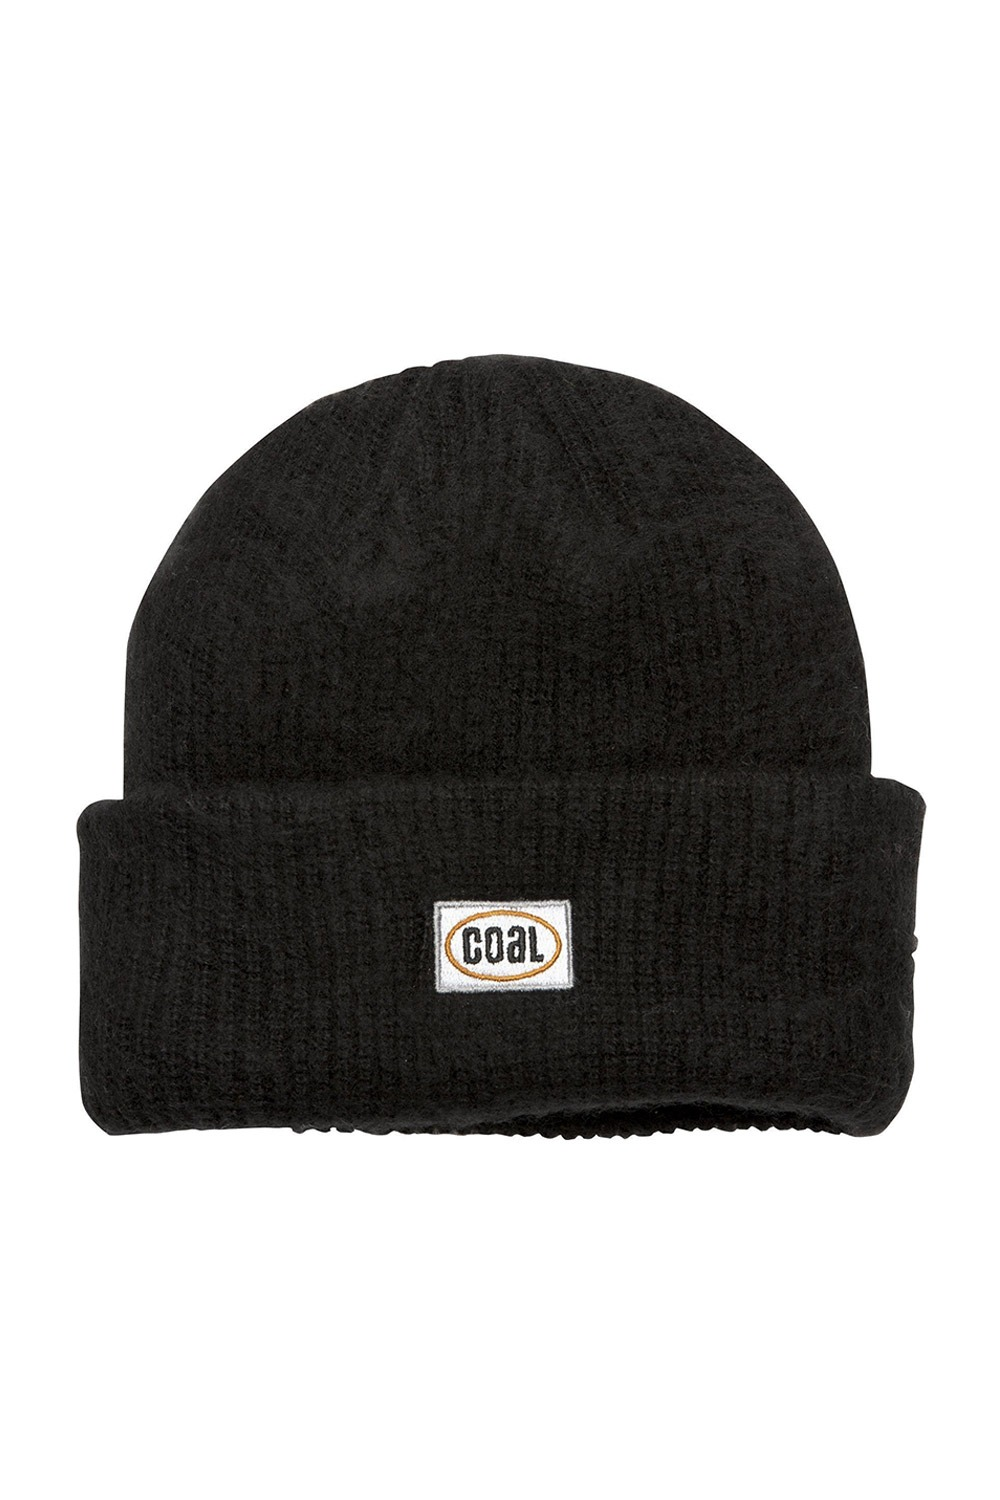 2021 콜 얼 숏비니 모자  COAL THE EARL BEANIE_BLK (BLACK)_DICA009BK